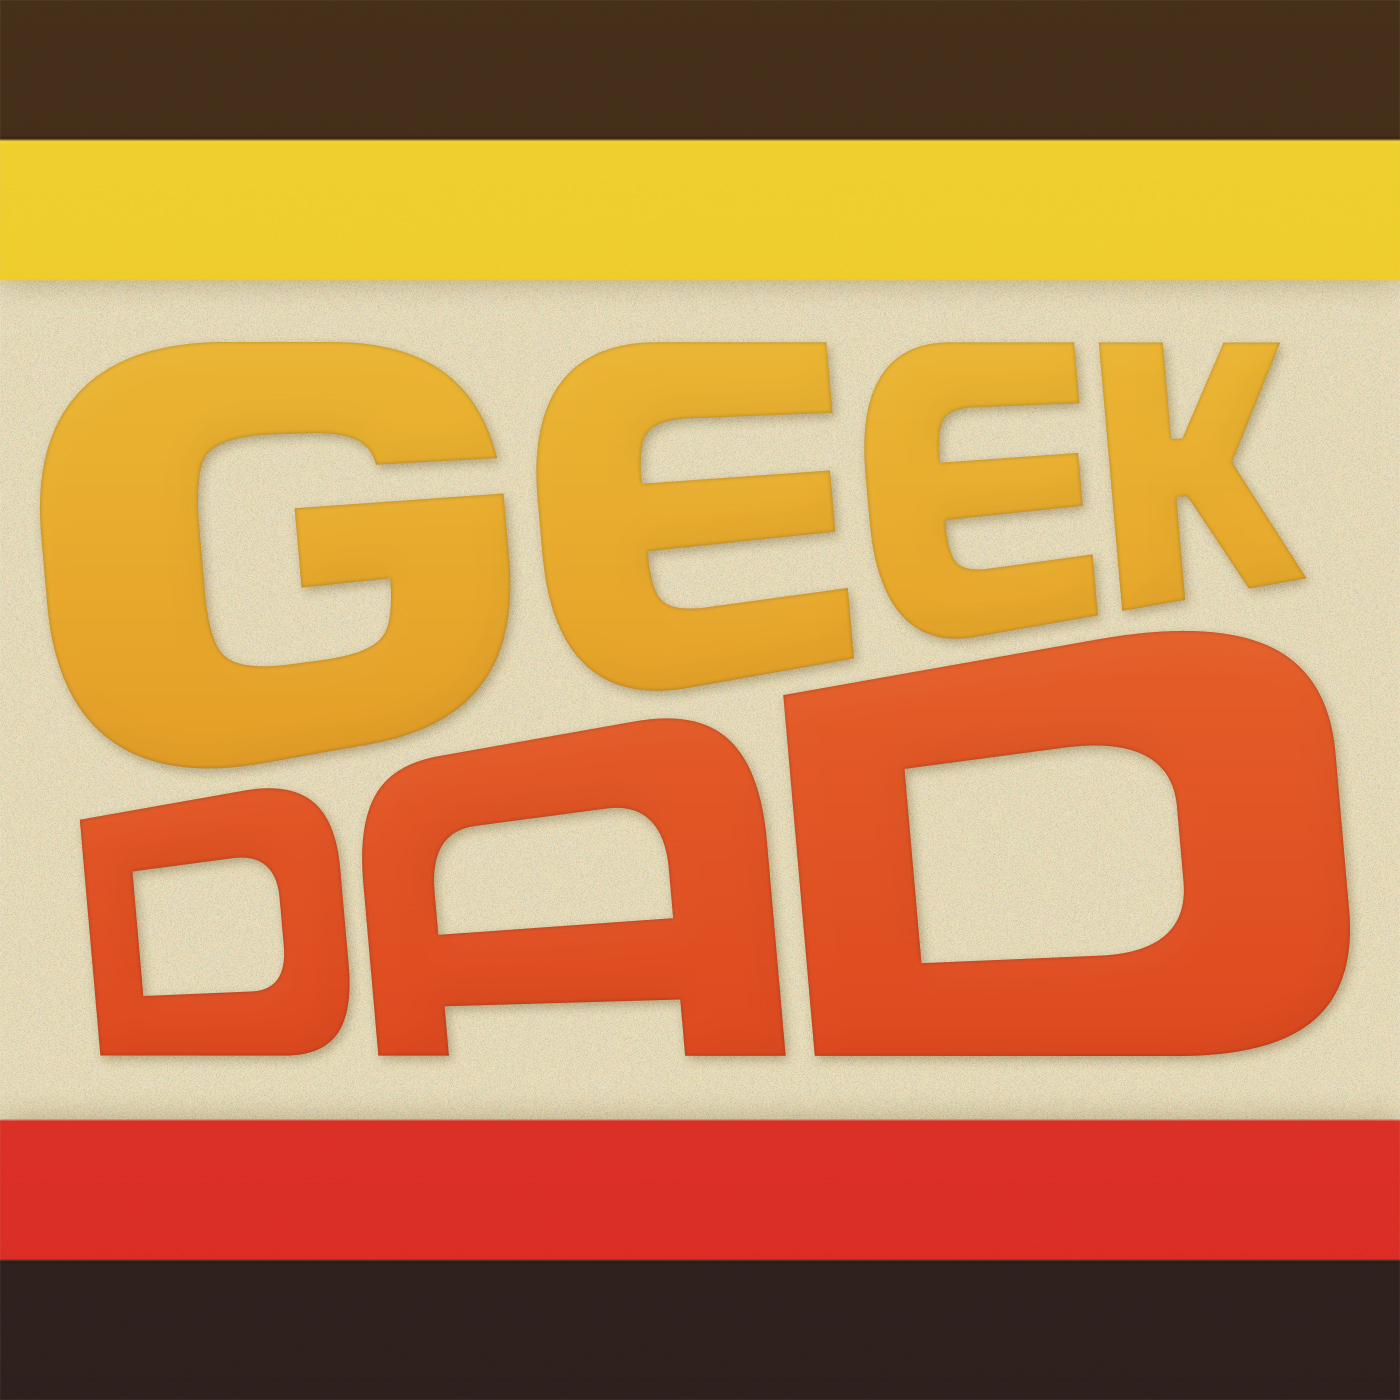 The GeekDads